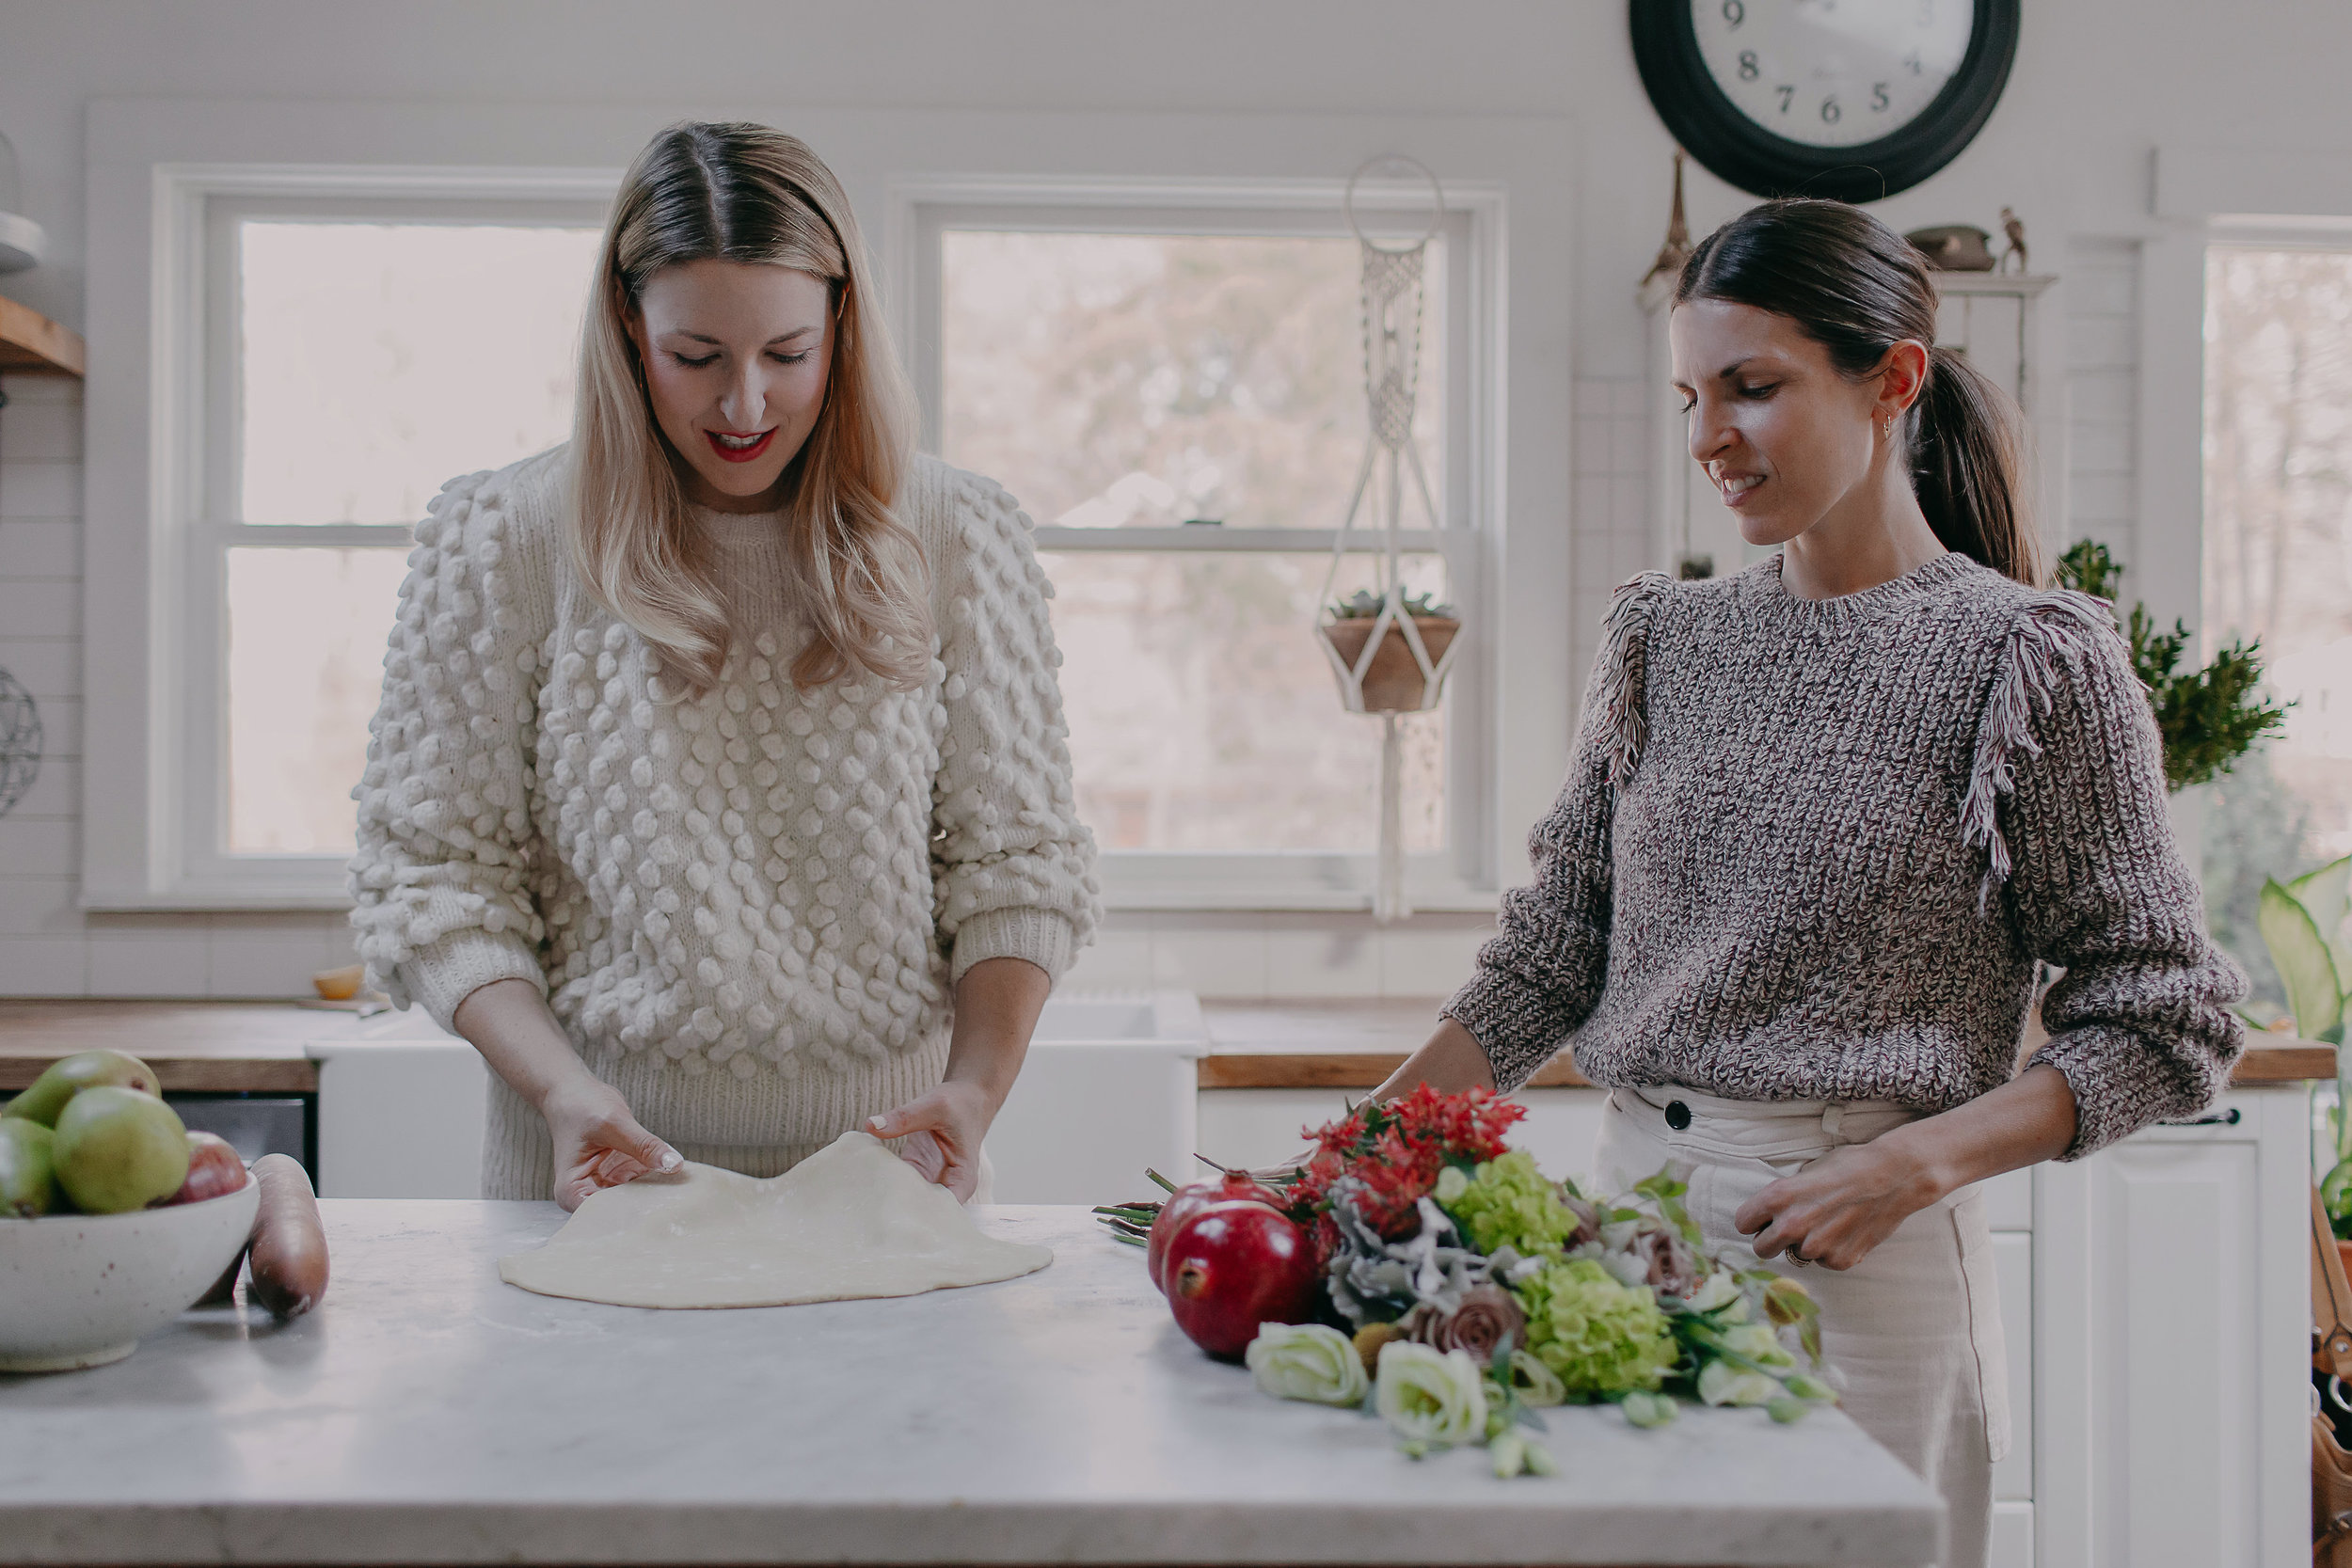 Sarah wears  Camilla sweater and  Lilliana skirt  in cream + Catherine wears  Marina Sweater  in multi tweed. Both sweaters are hand-knit by our Peruvian artisan women in the softest baby alpaca yarn.